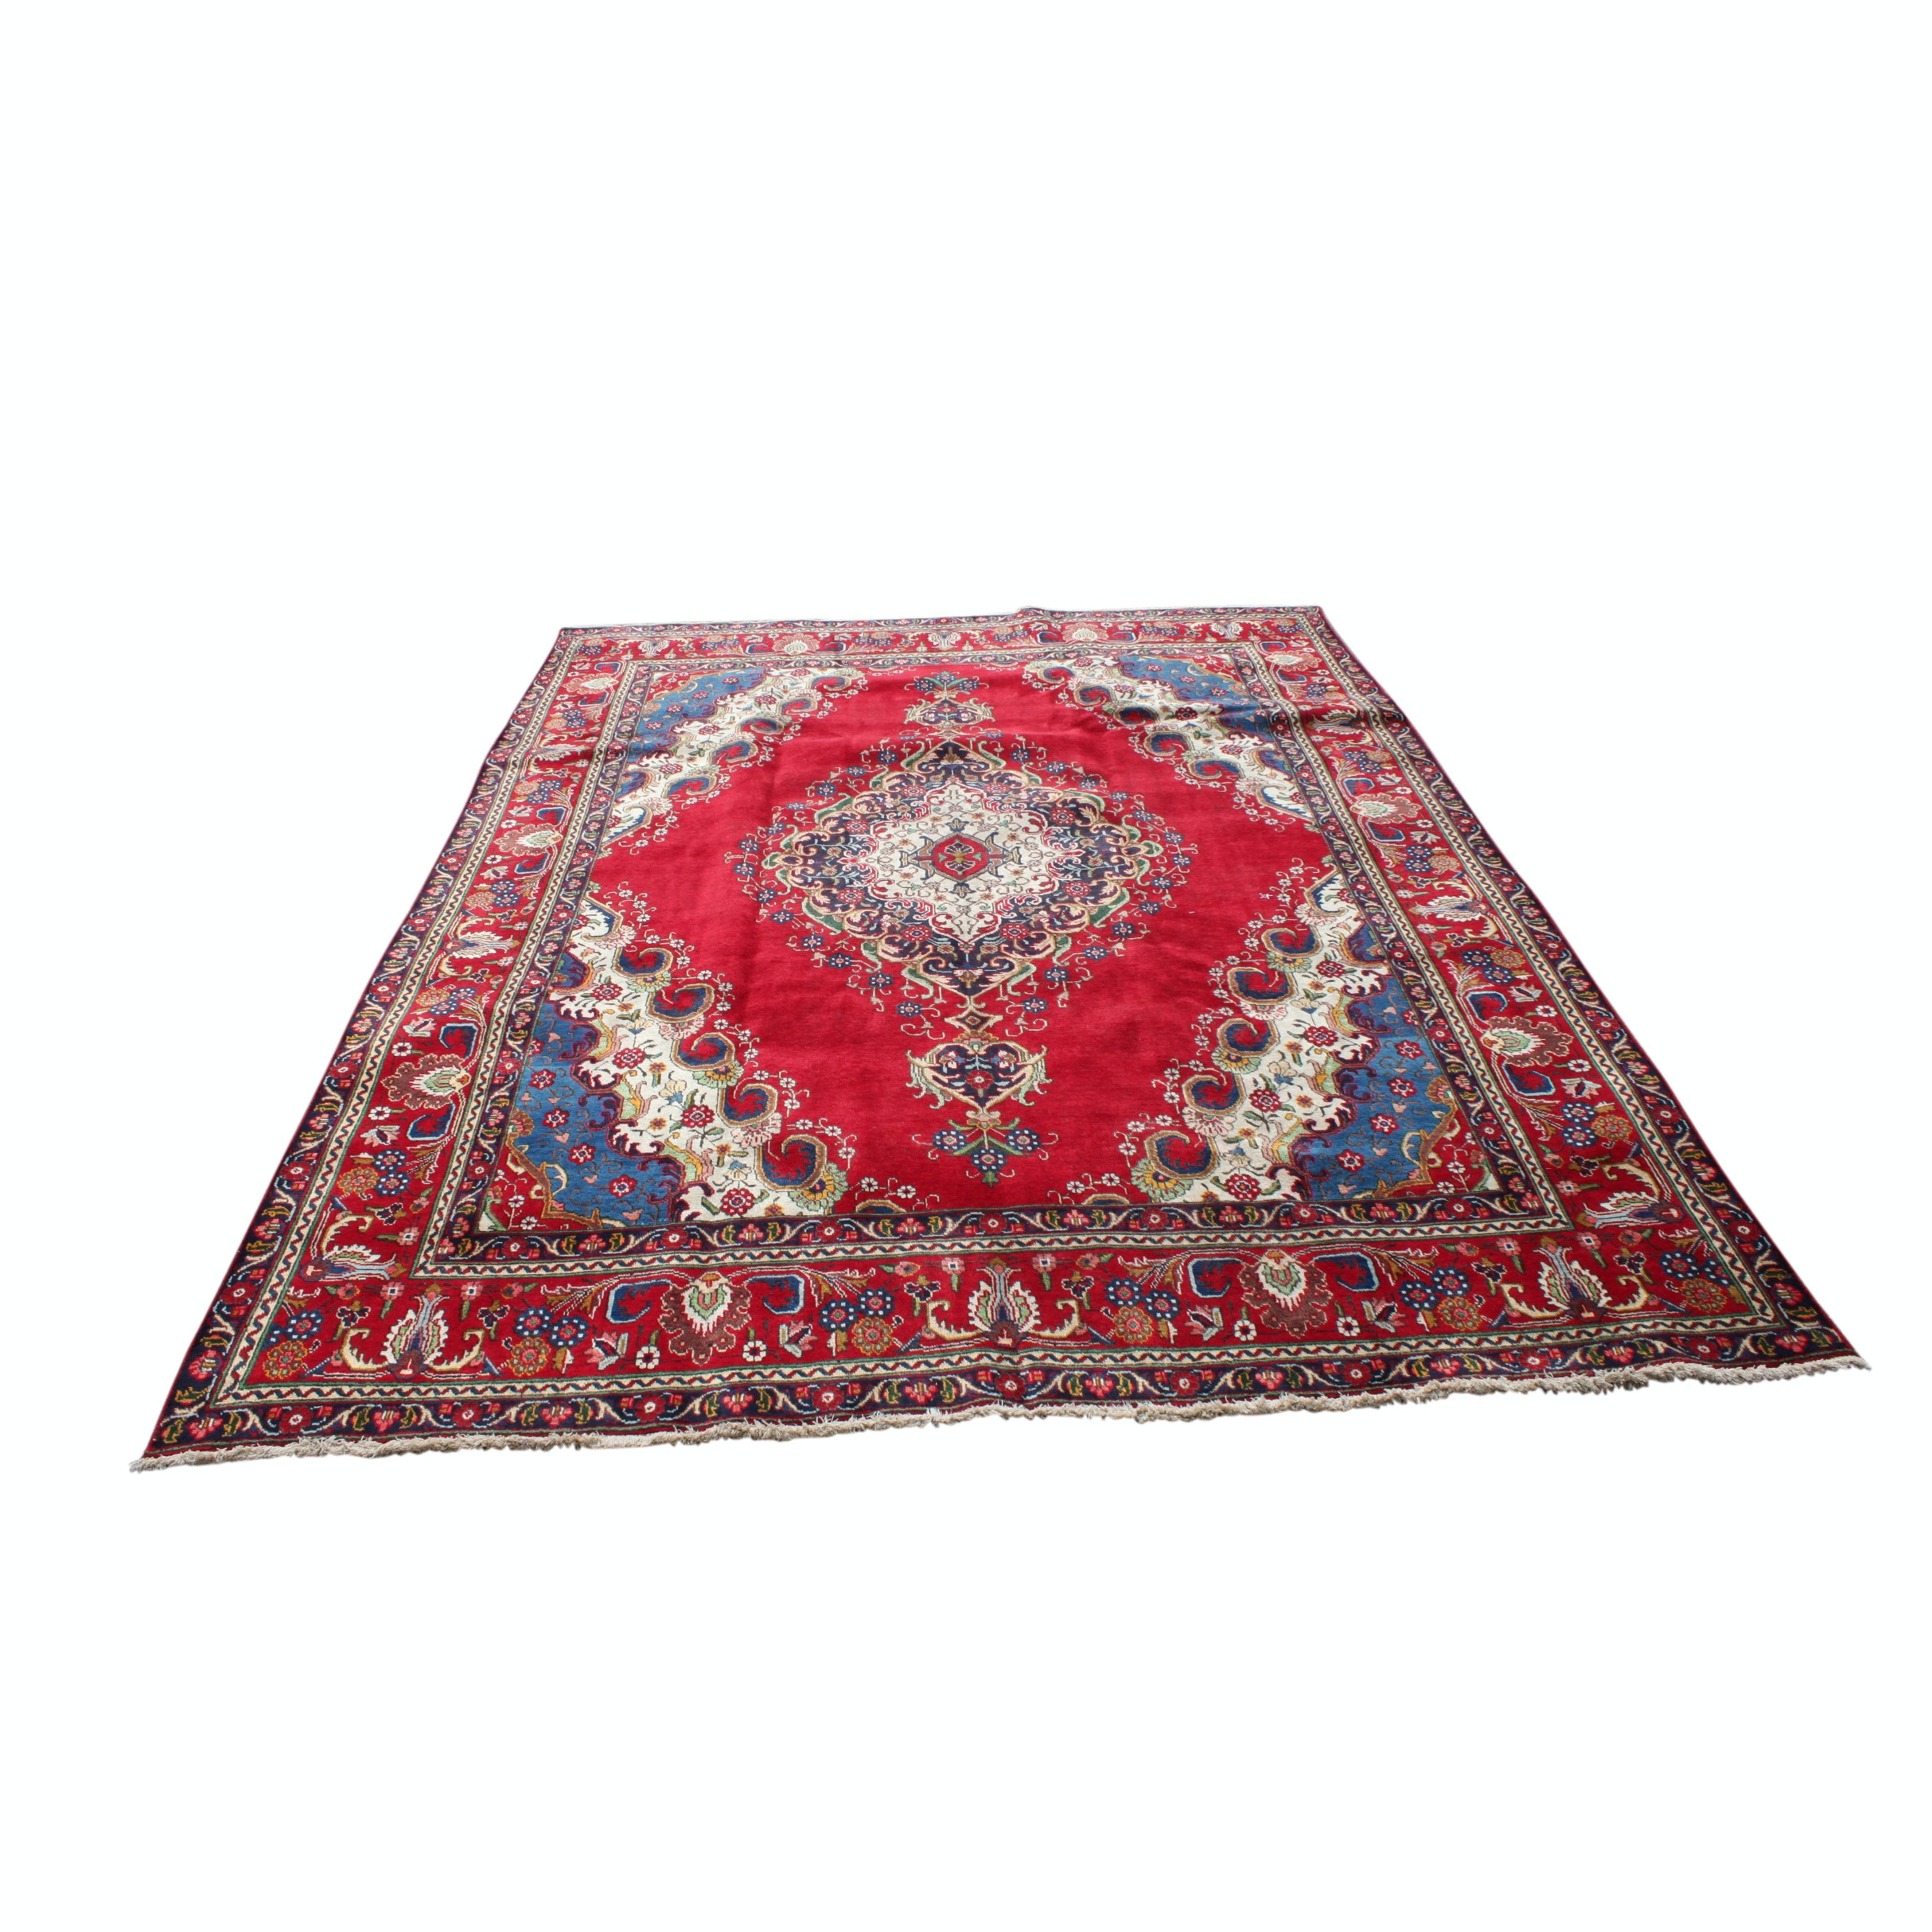 Vintage Hand-Knotted Persian Tabatabe Tabriz Wool Room Size Rug